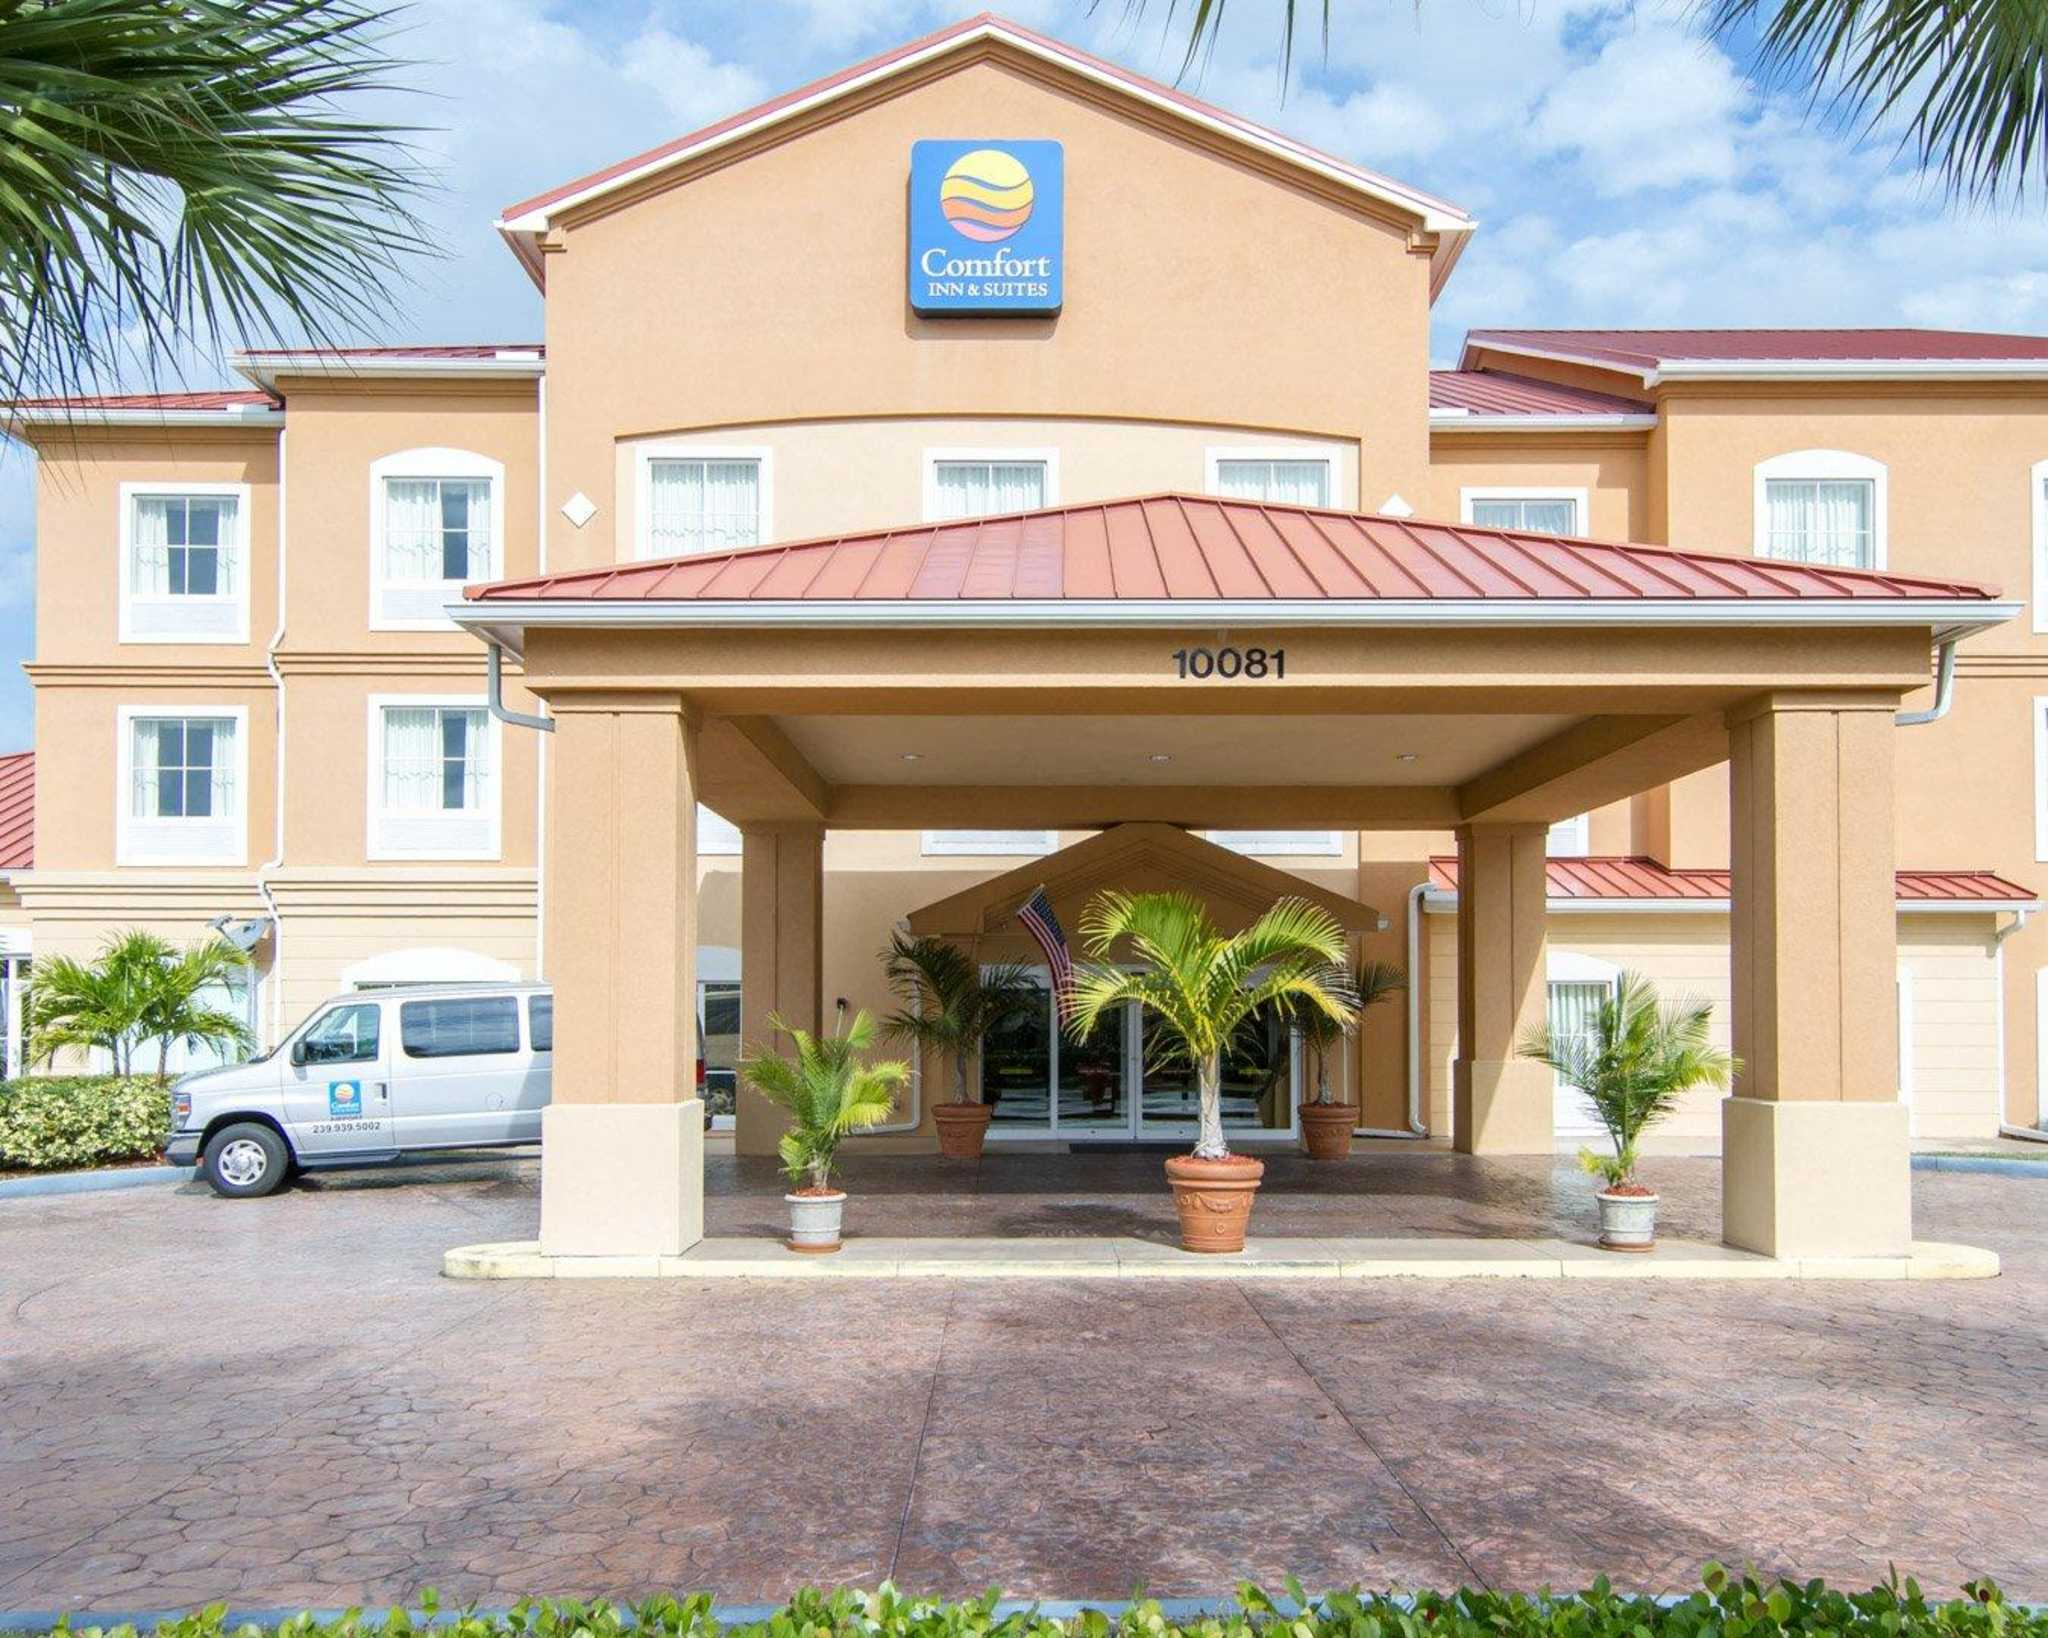 Comfort Inn Amp Suites Airport In Fort Myers Fl 33913